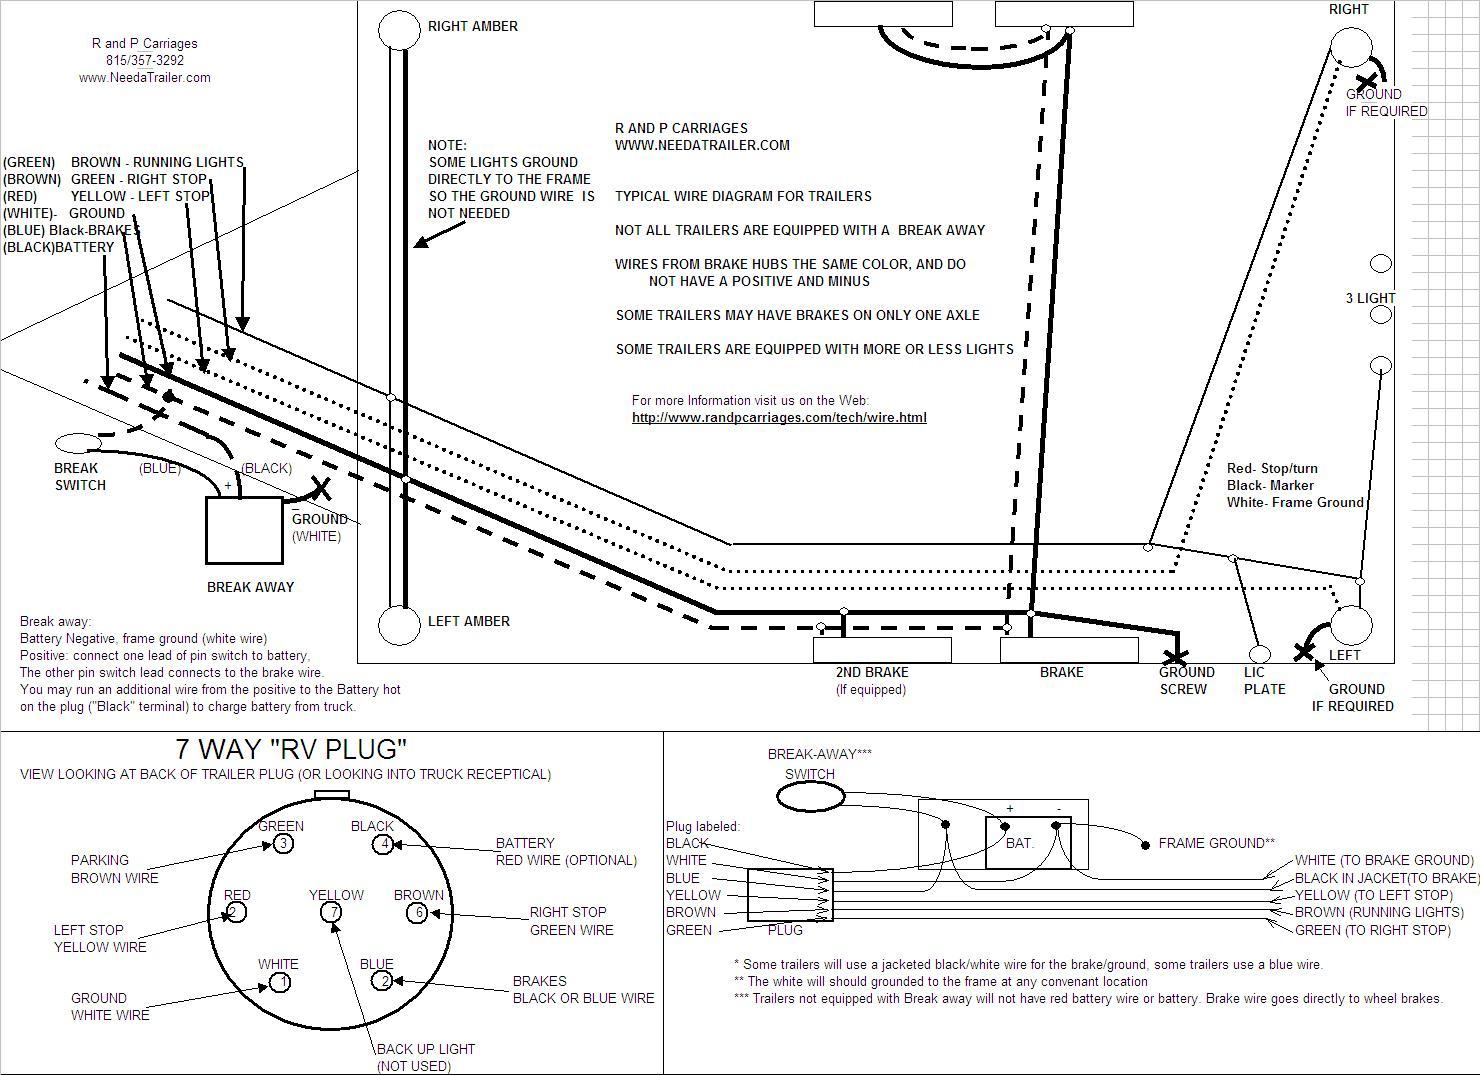 18 Wheeler Trailer Connector Wiring Diagram | Wiring Library - 18 Wheeler Trailer Plug Wiring Diagram